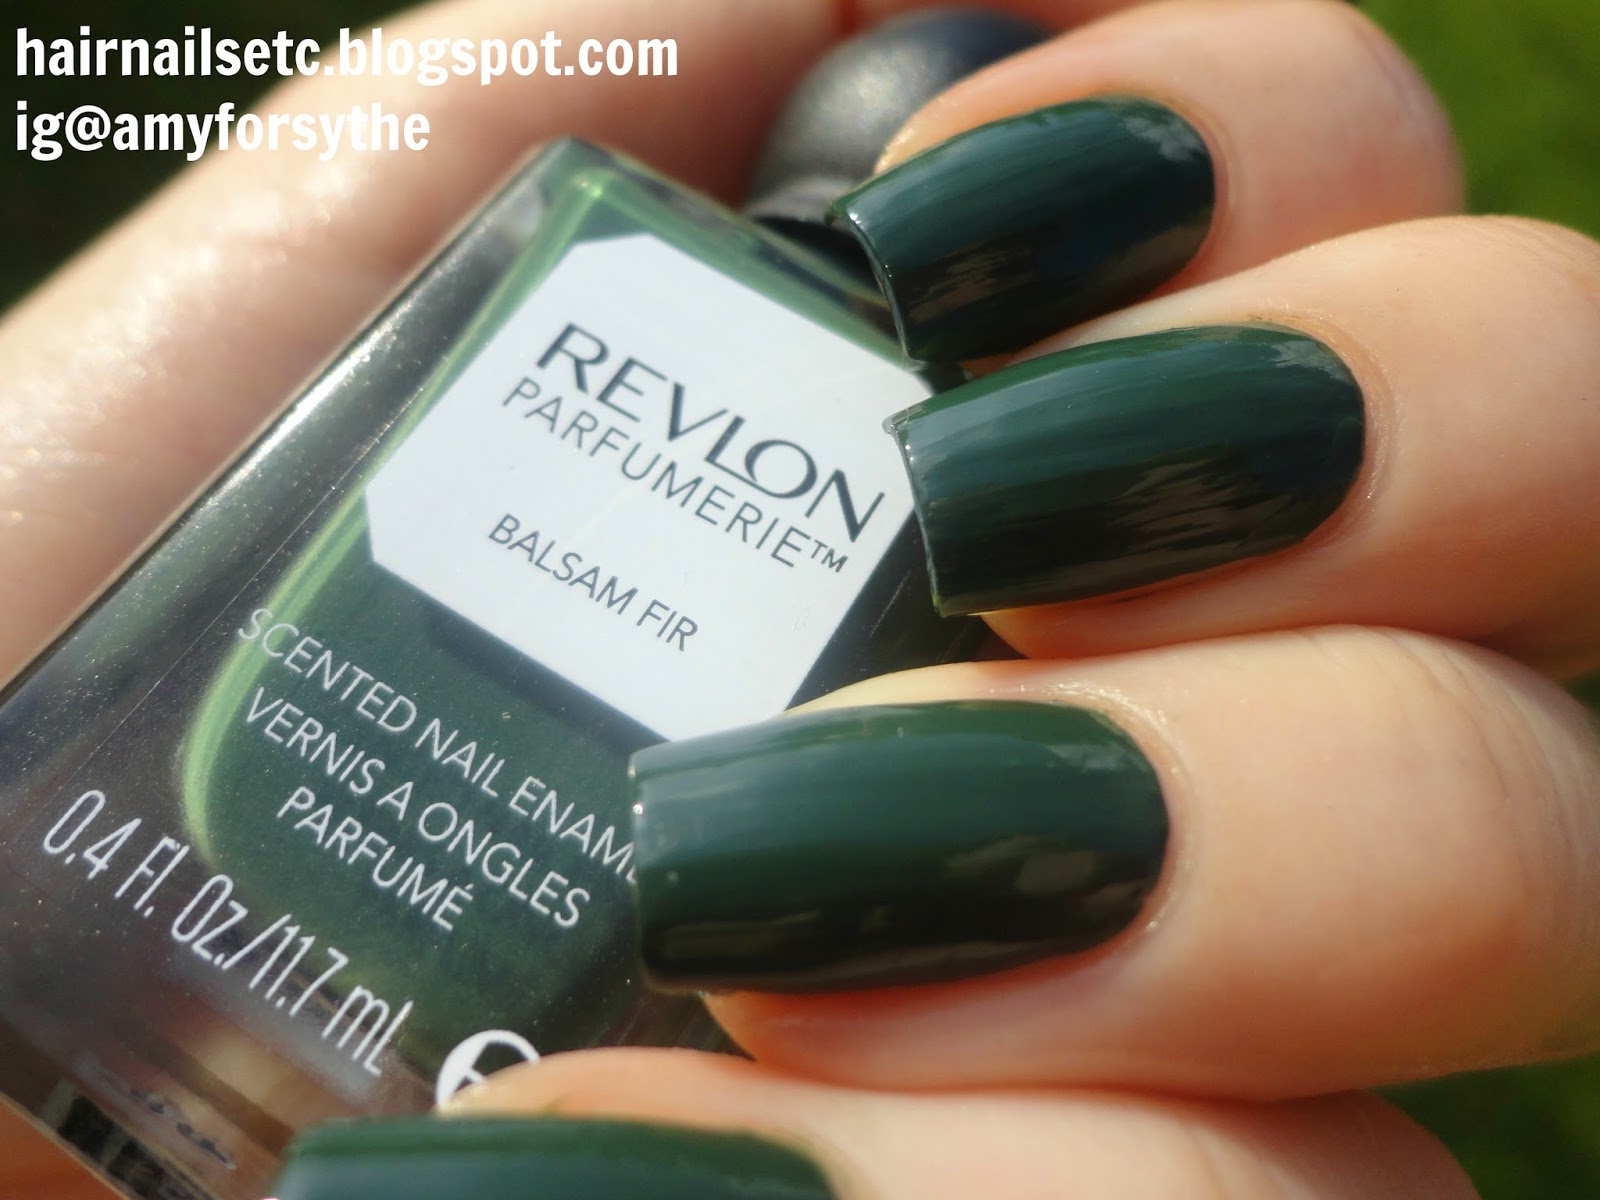 Swatch and review of Revlon Parfumerie Nail Enamel Varnish Polish in Balsam Fir